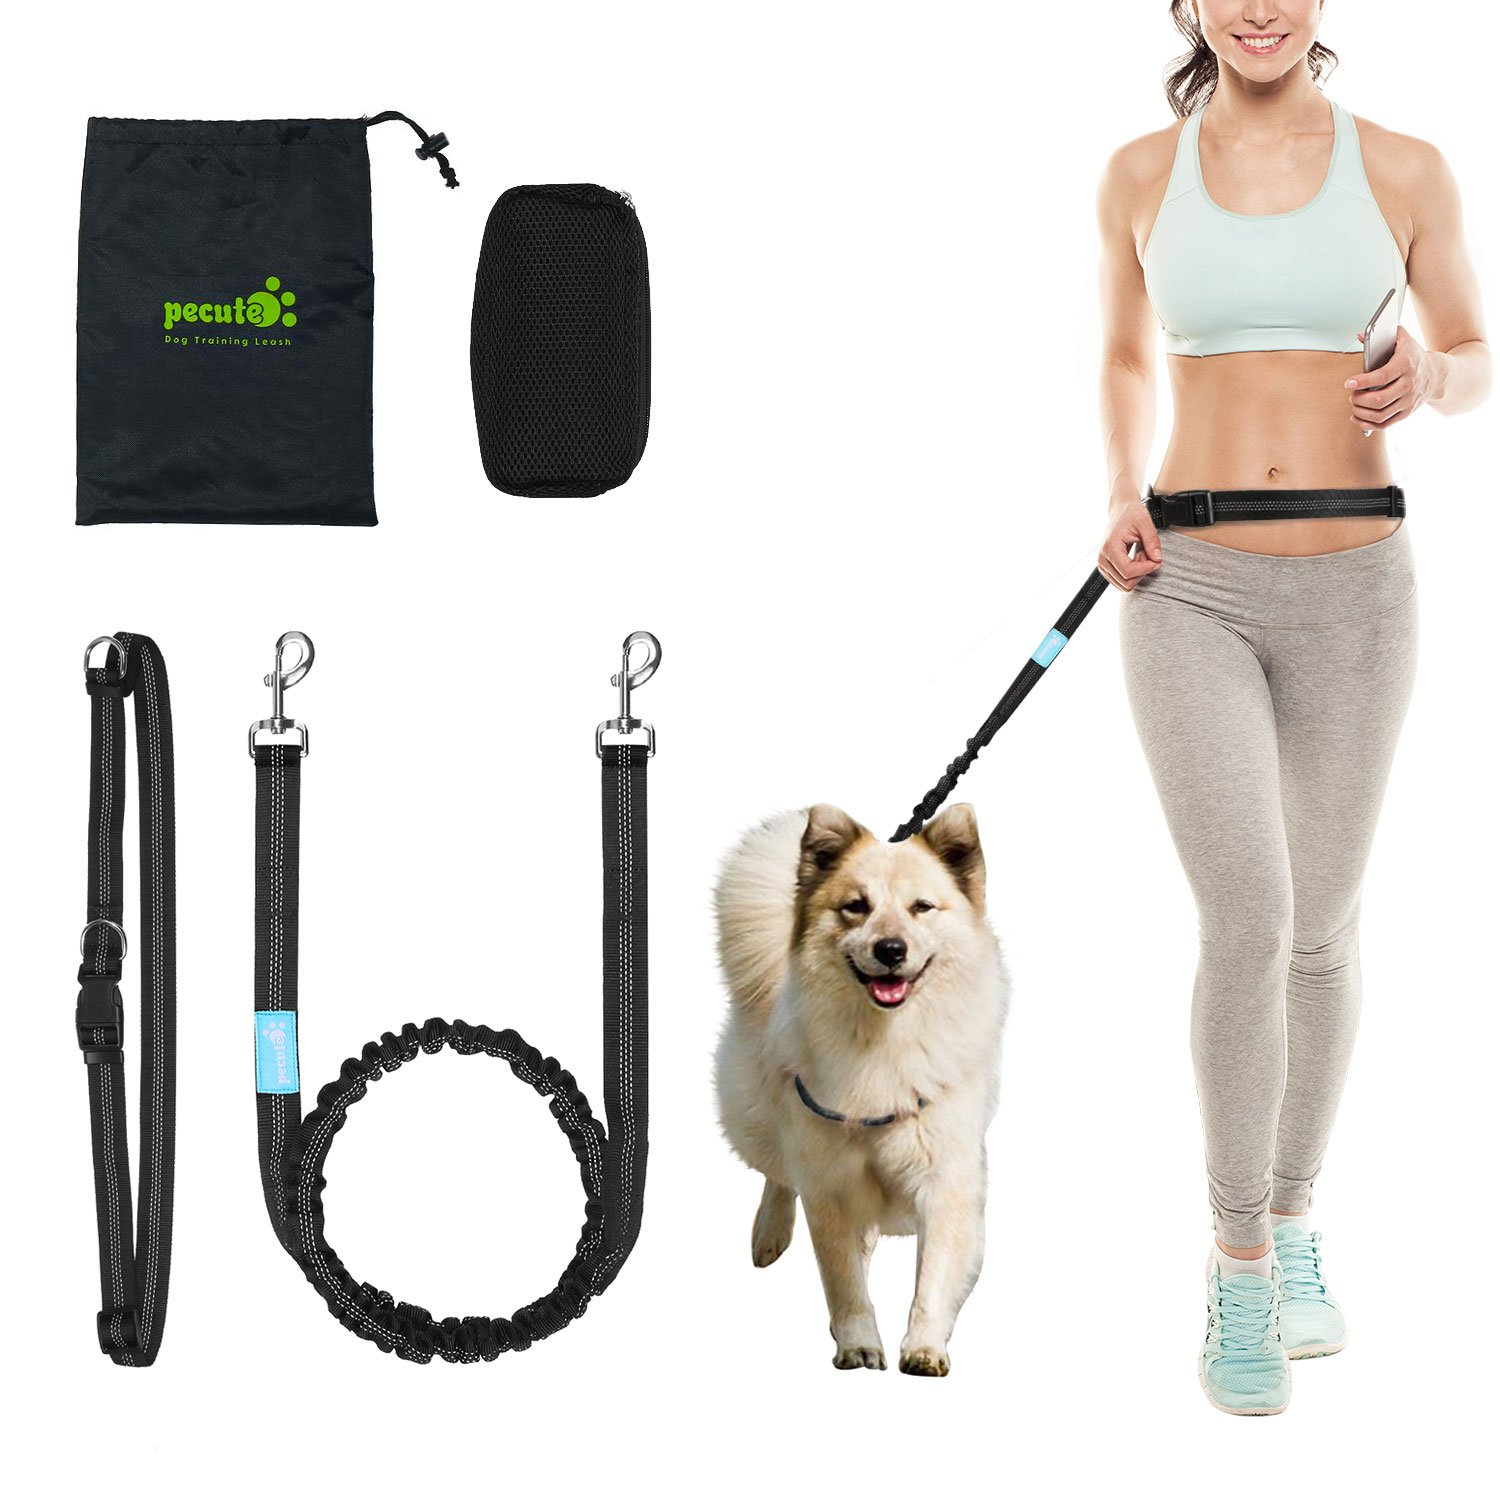 Hands Free Waist Dog Leash 1.2m with Bungee and Dog treat pouch,Adjustable Detachable Waist Belt Fit 28'' to 48'', 3 Reflective Stitching Bungee leash For Jogging, Running,include Free Handy Bag